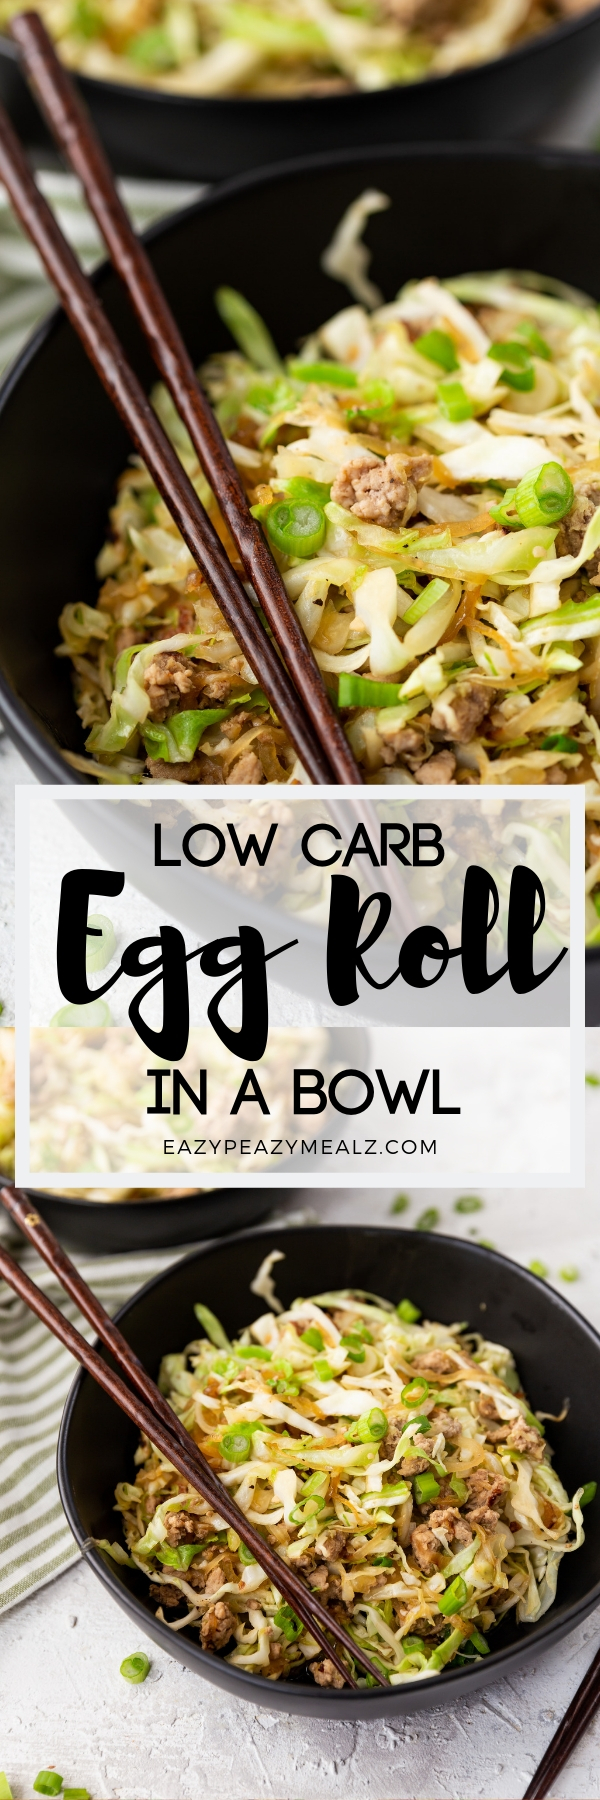 eggroll in a bowl #eggrollinabowl All the flavors you love from egg rolls in a low carb version, this egg roll bowl. #Eggs roll in a bowl Egg roll in a bowl (keto)